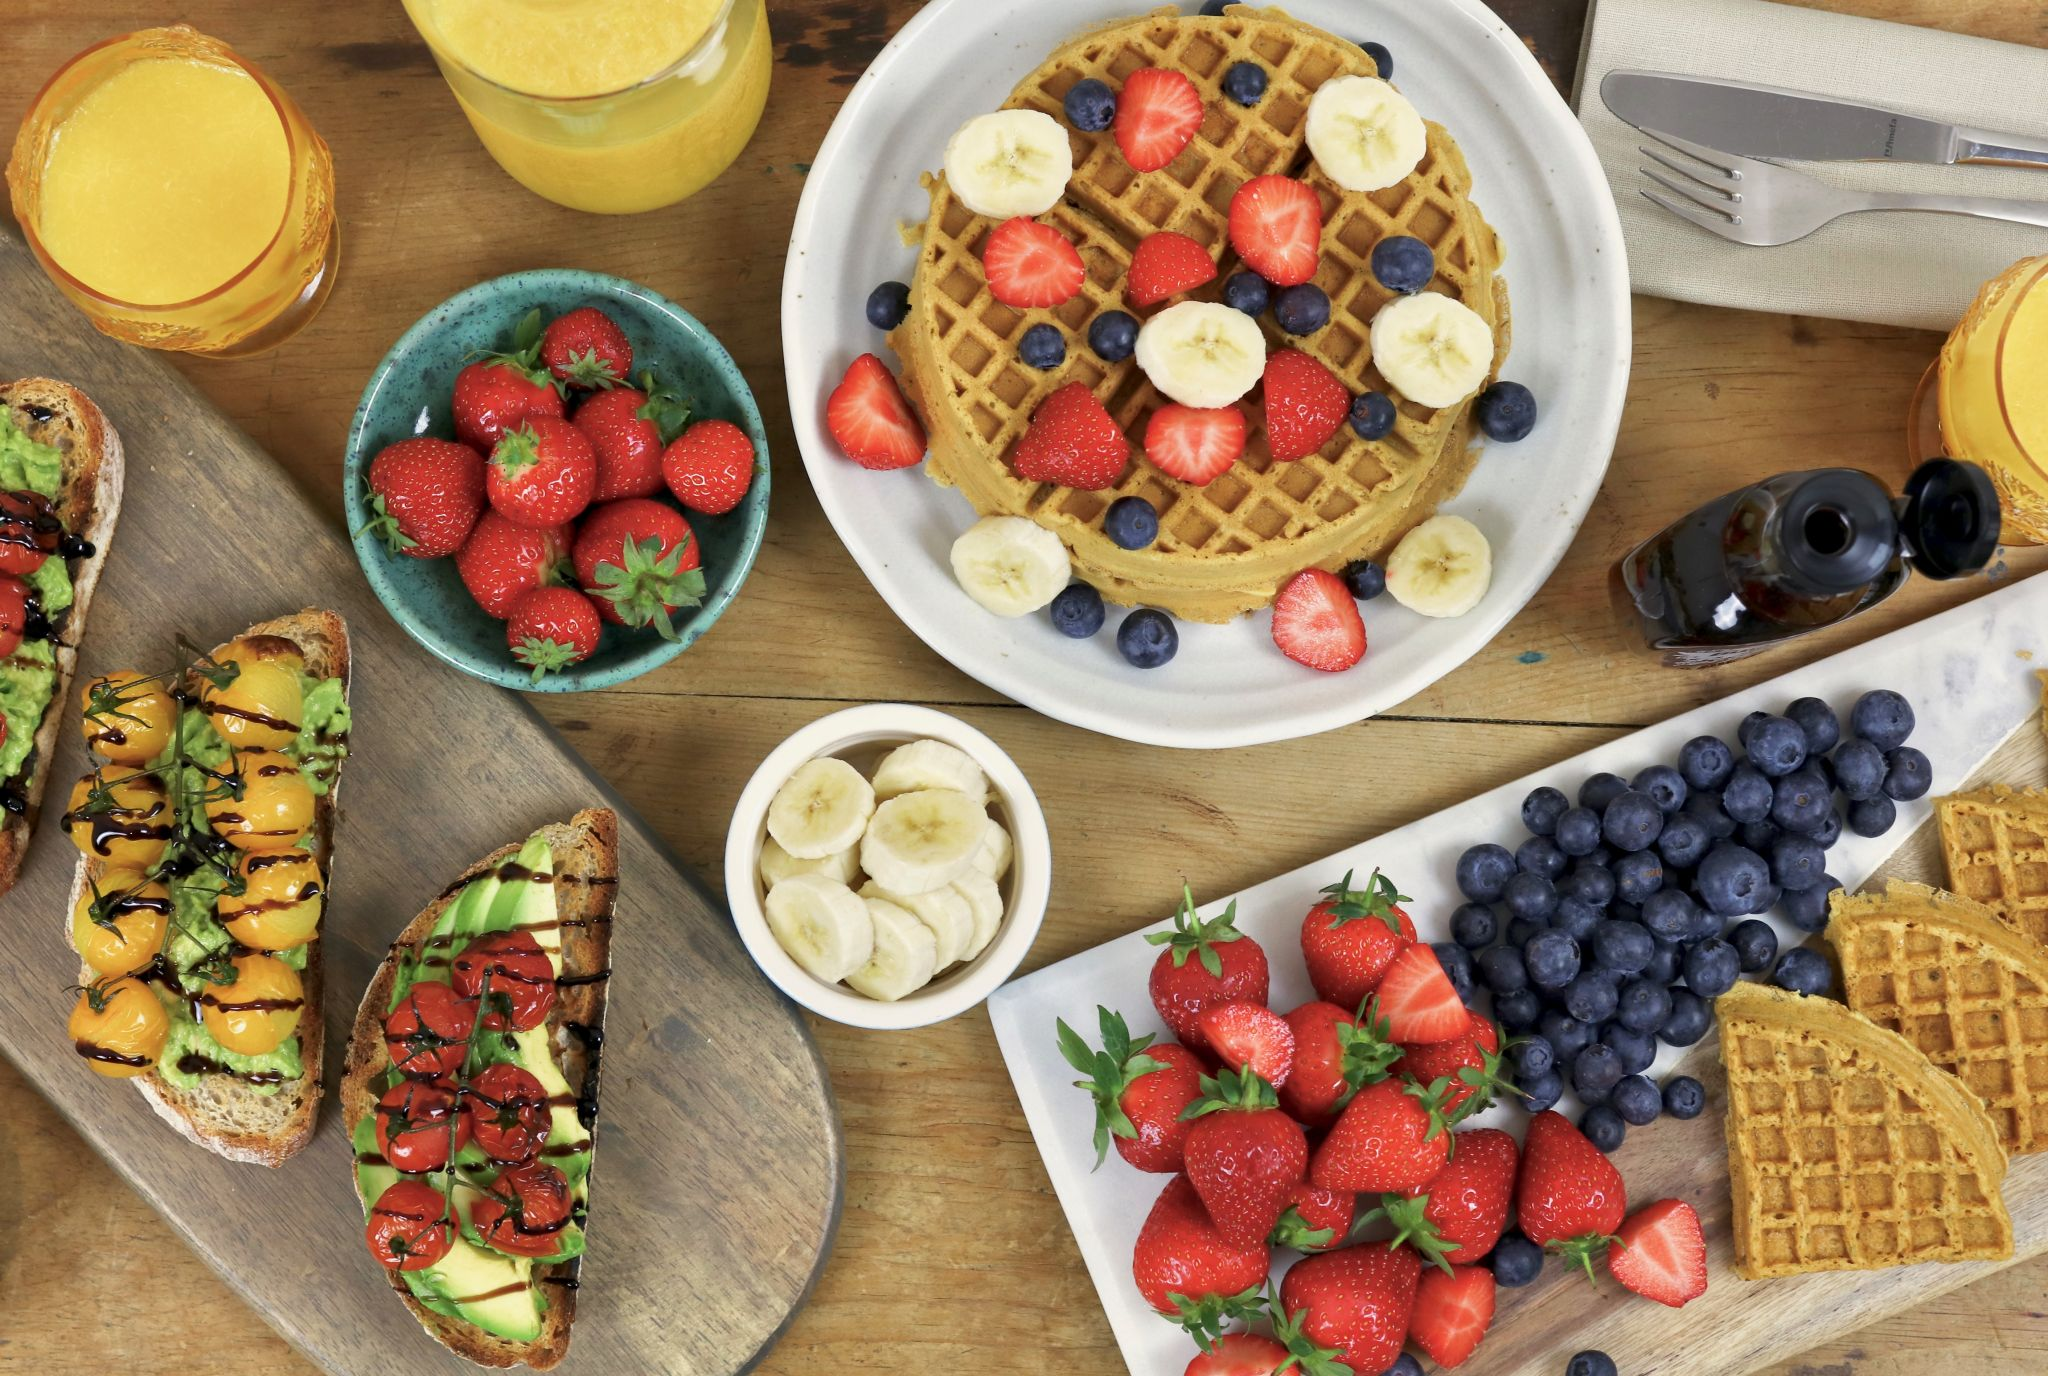 Brunch club at home - waffles avocado toast fruit spread